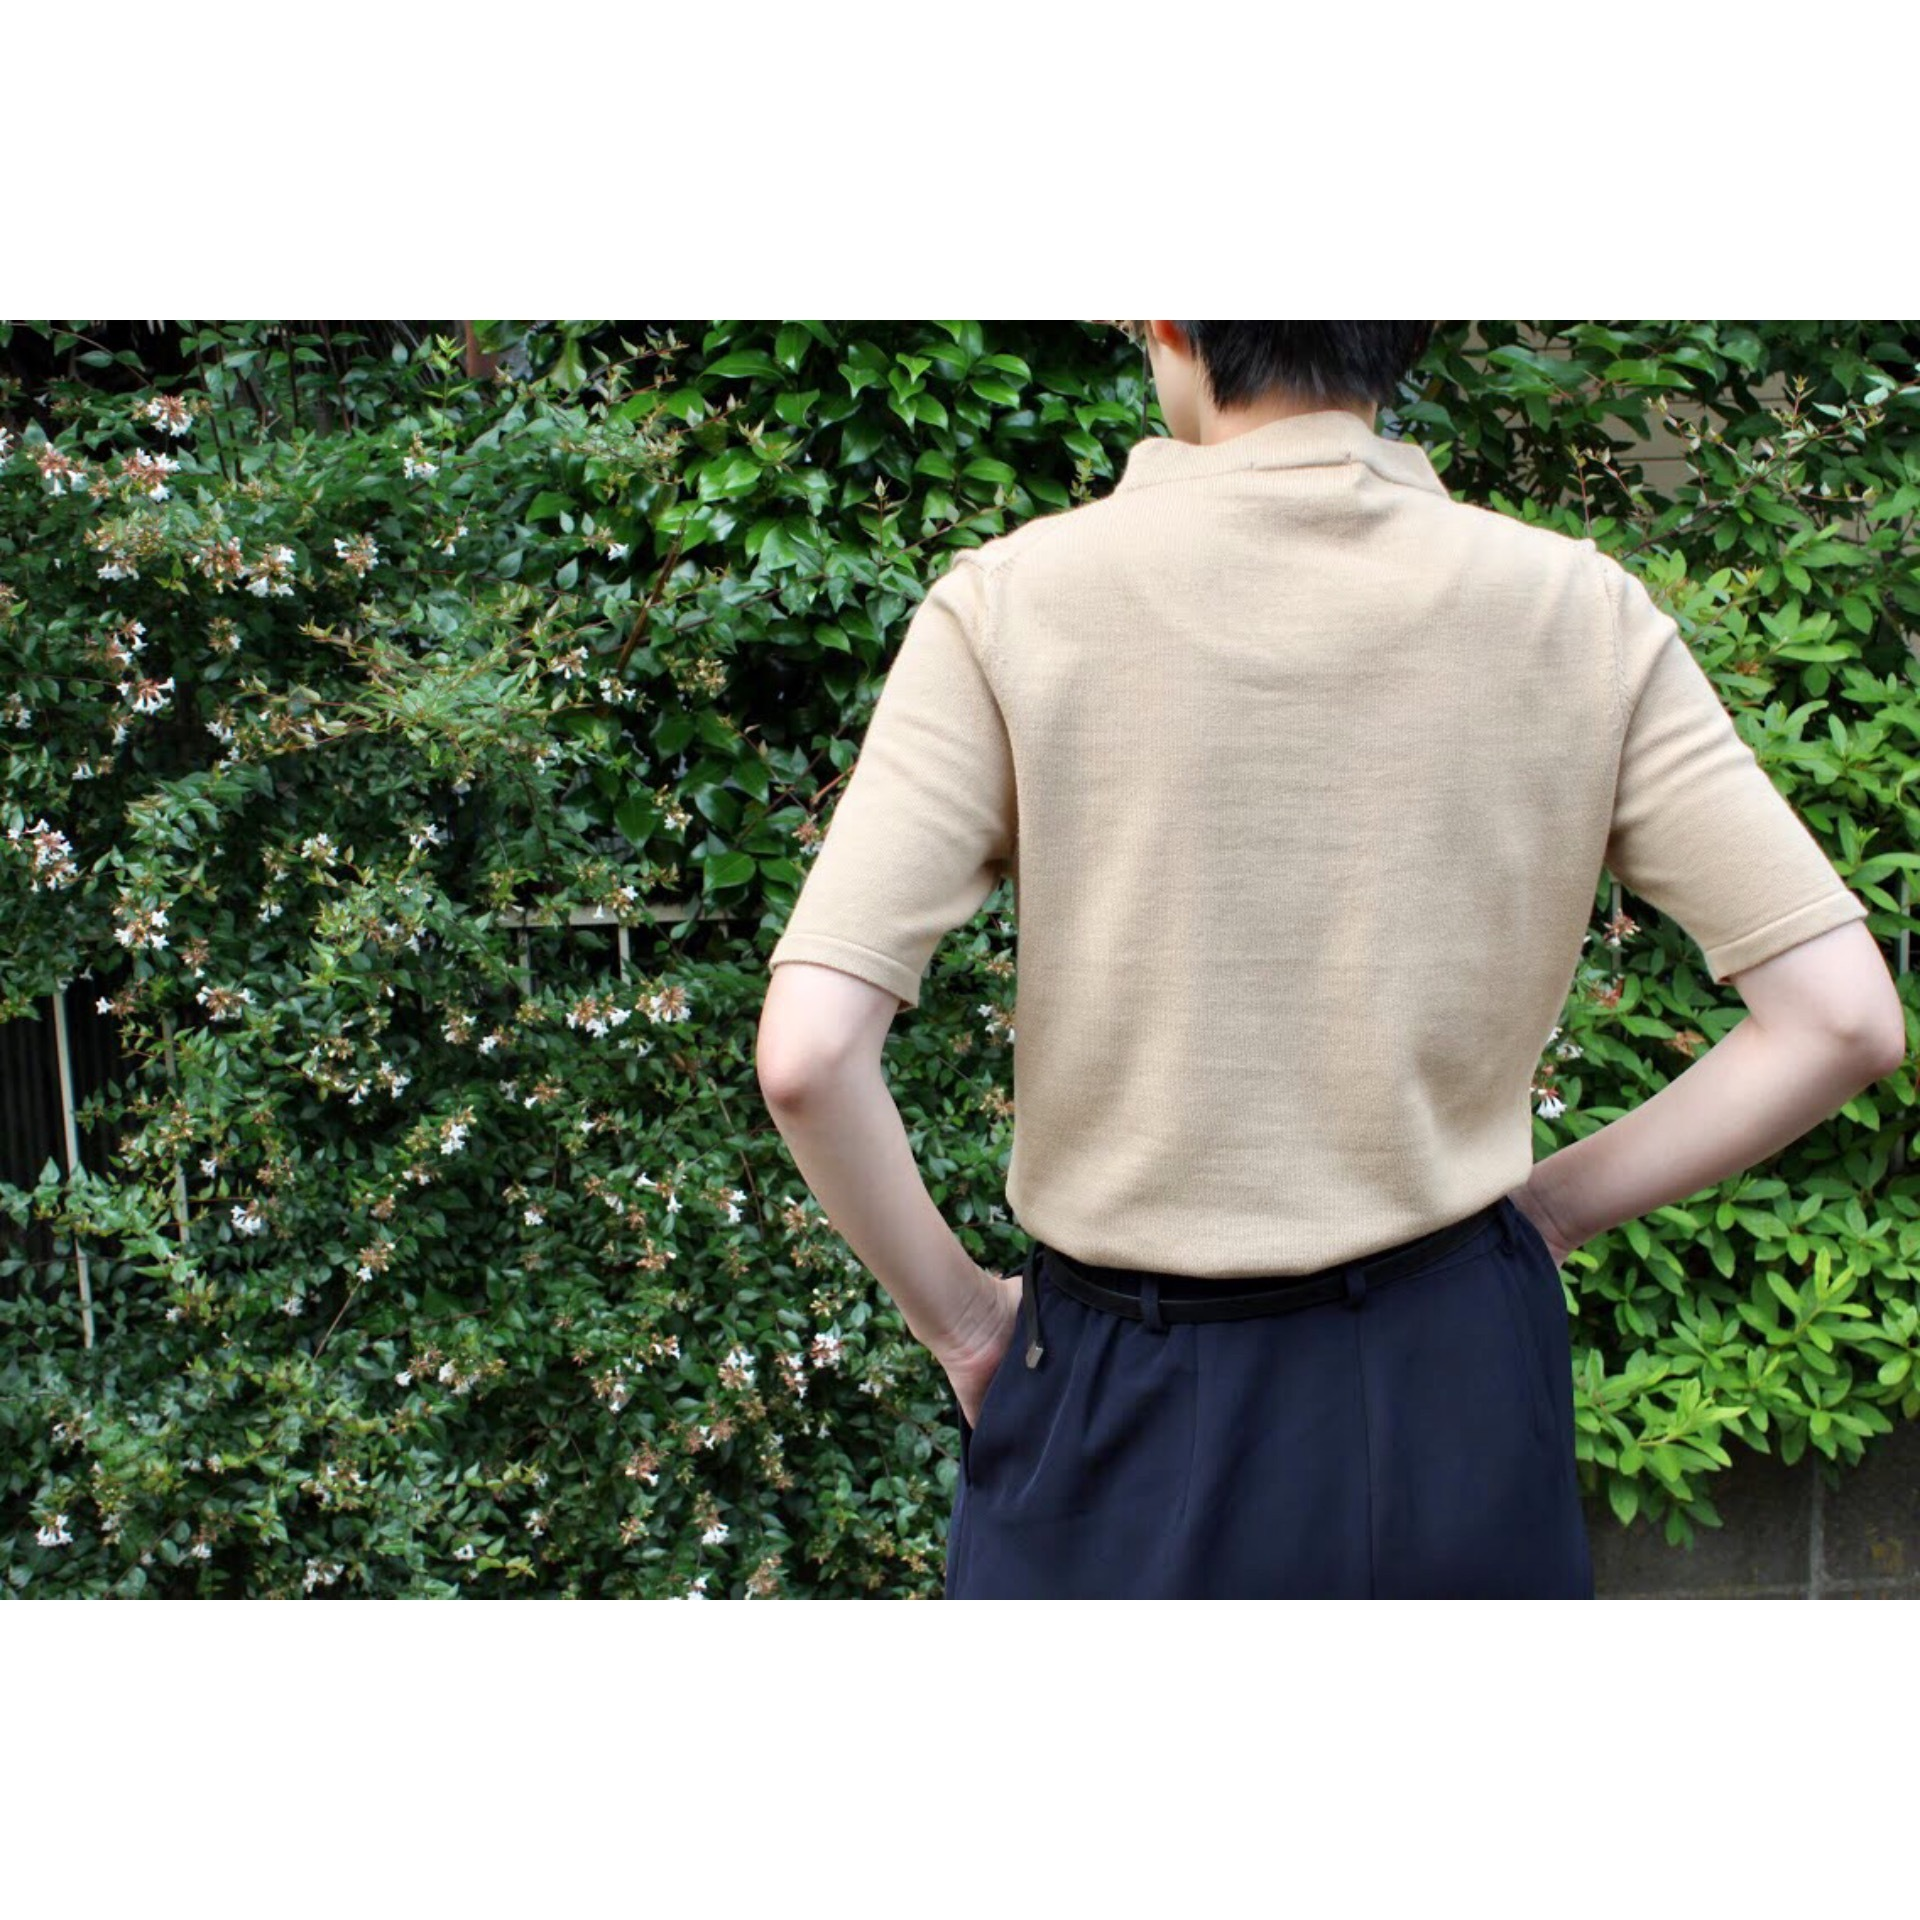 Vintage hi neck knitted shirt